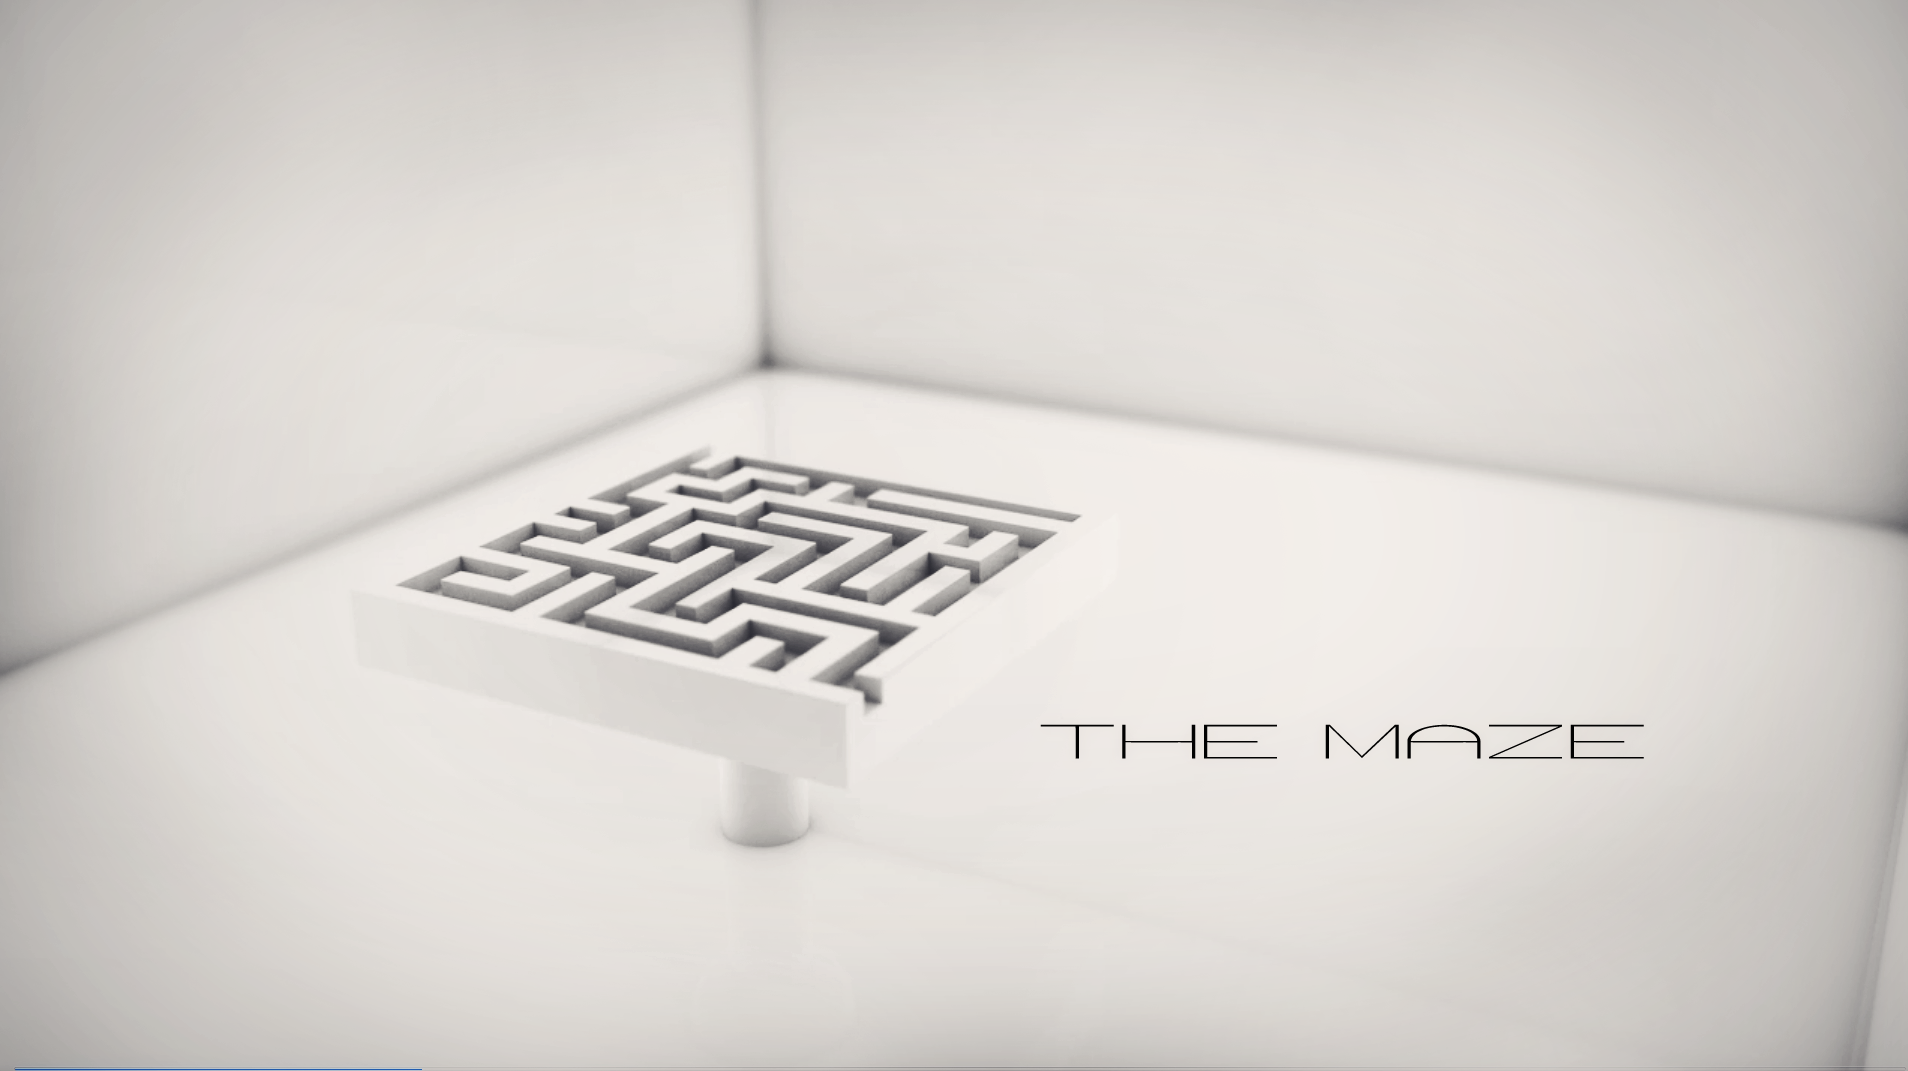 themaze_thumb